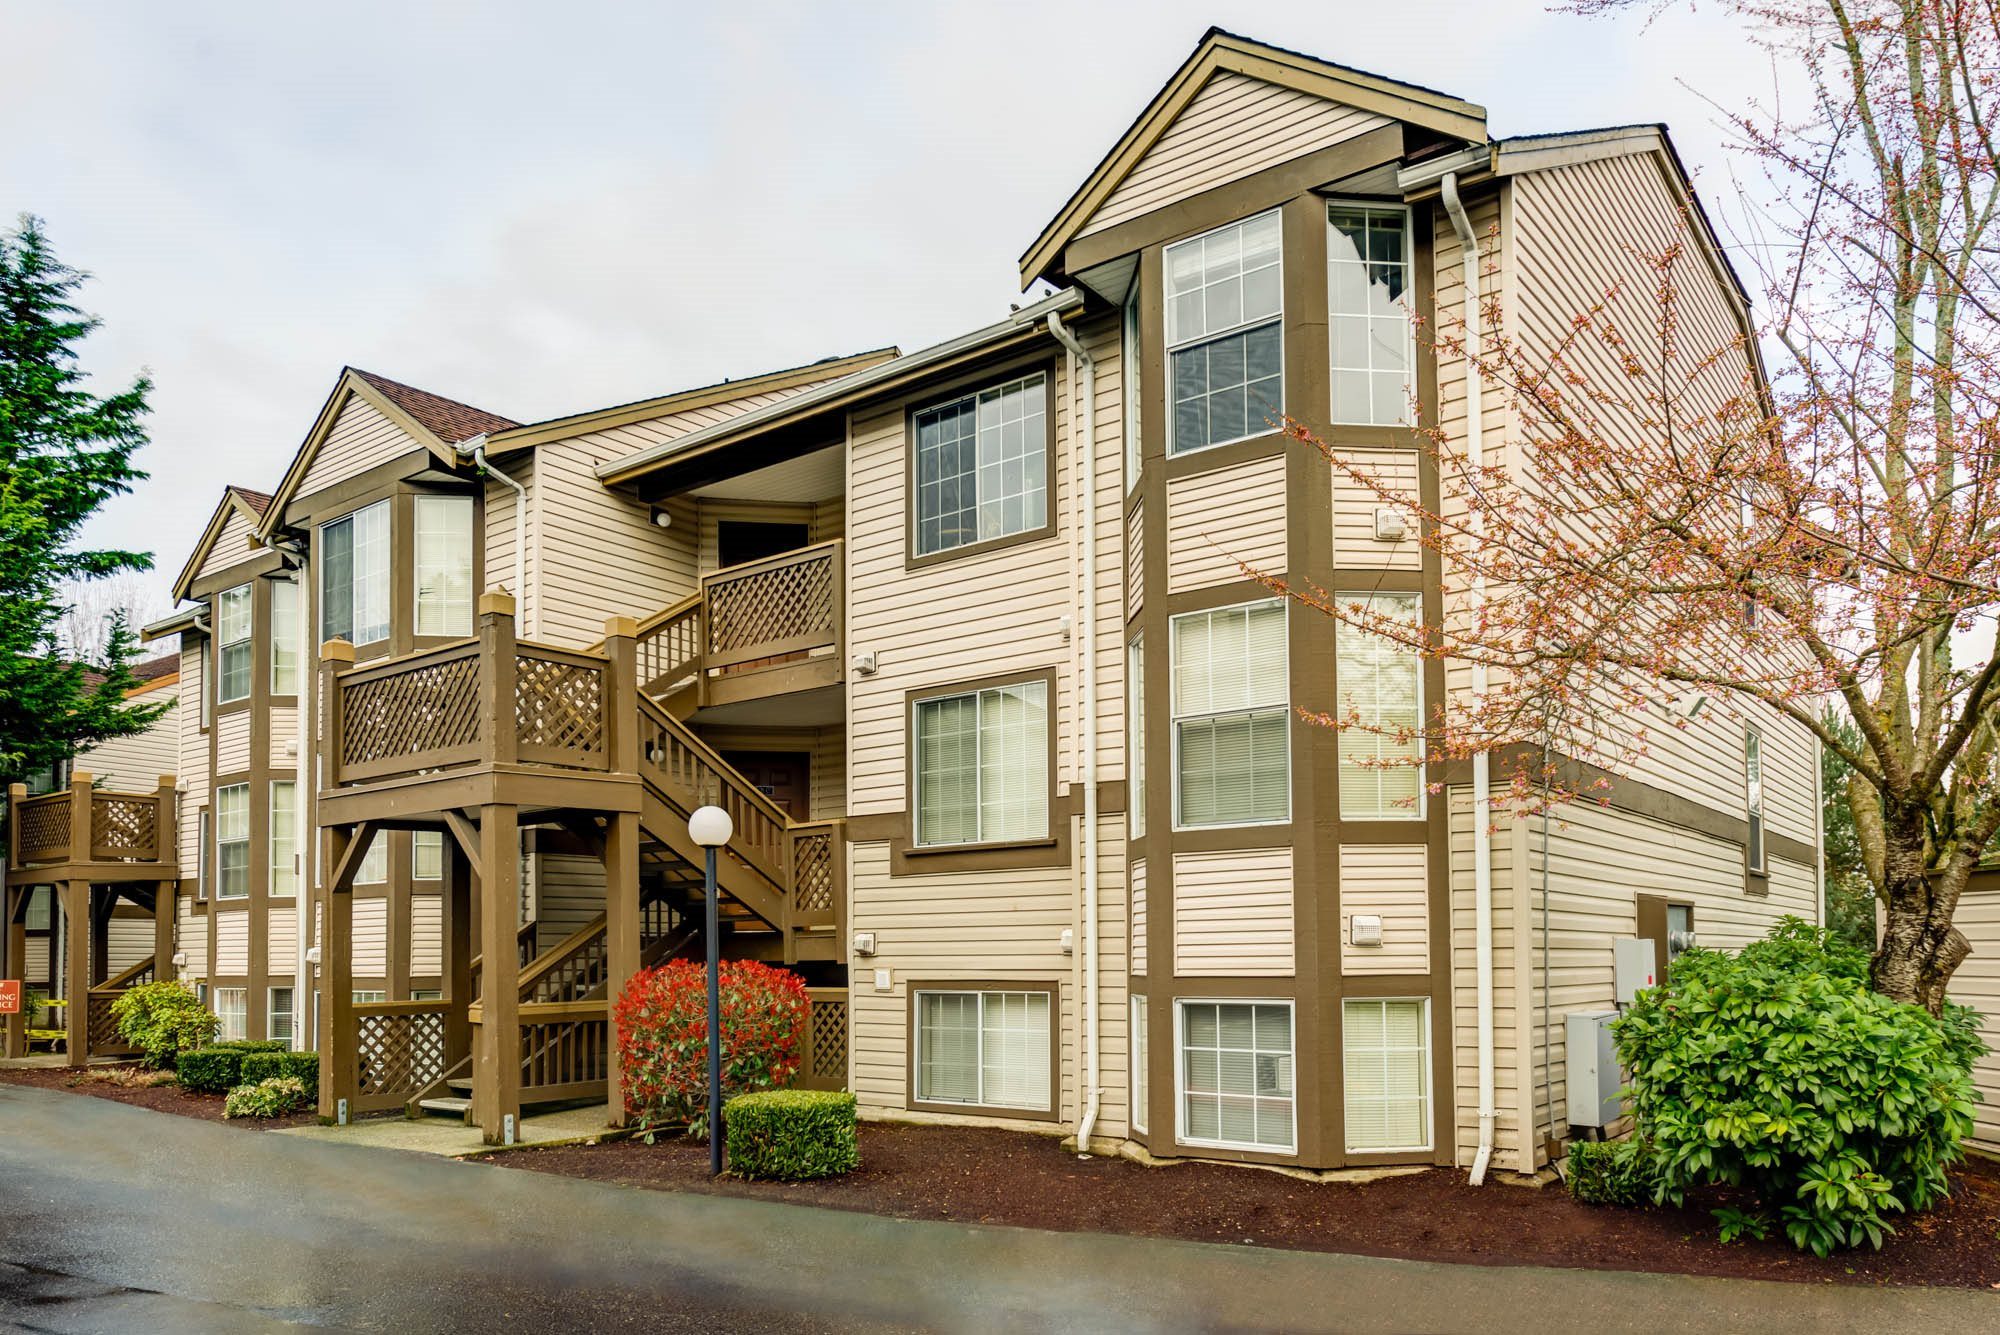 Renovated Building at Westview Village, Renton, WA,98055